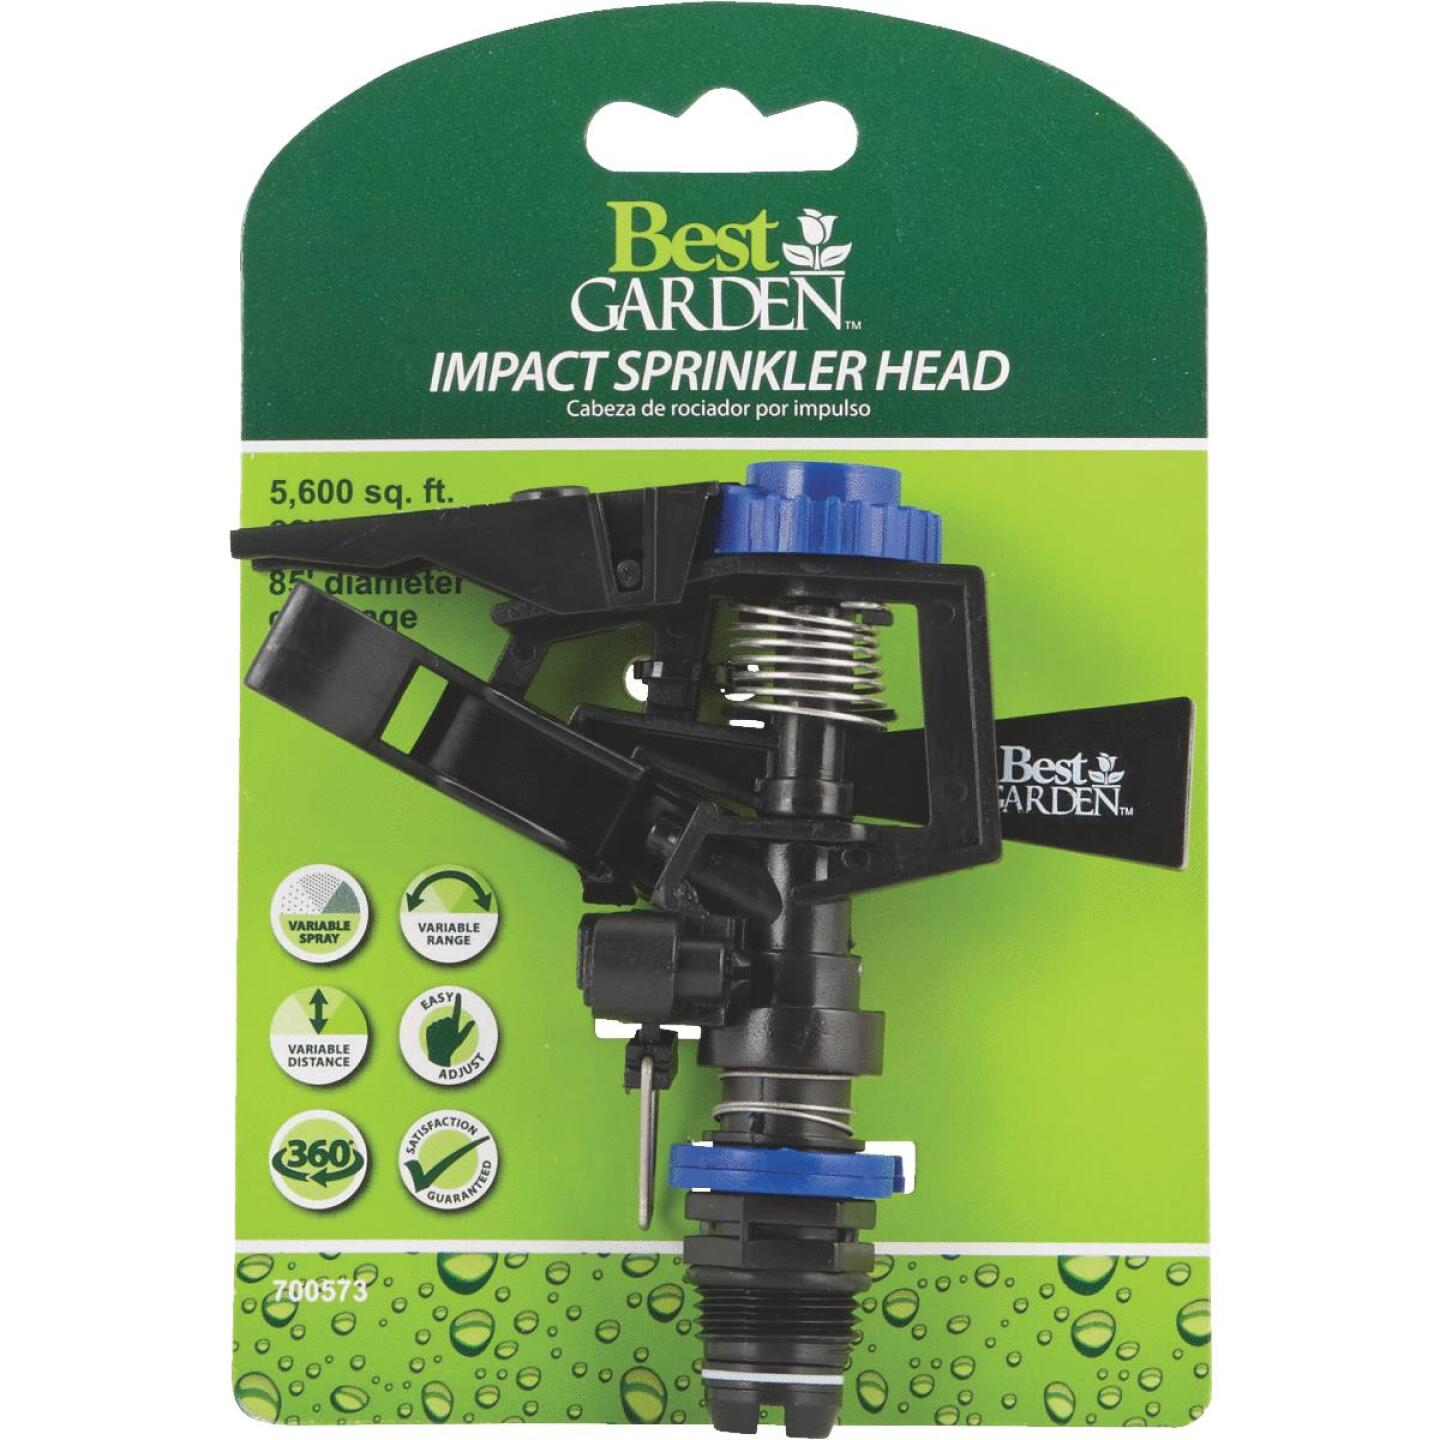 Best Garden Poly 85 Ft. Dia. Impulse Sprinkler Head Image 2